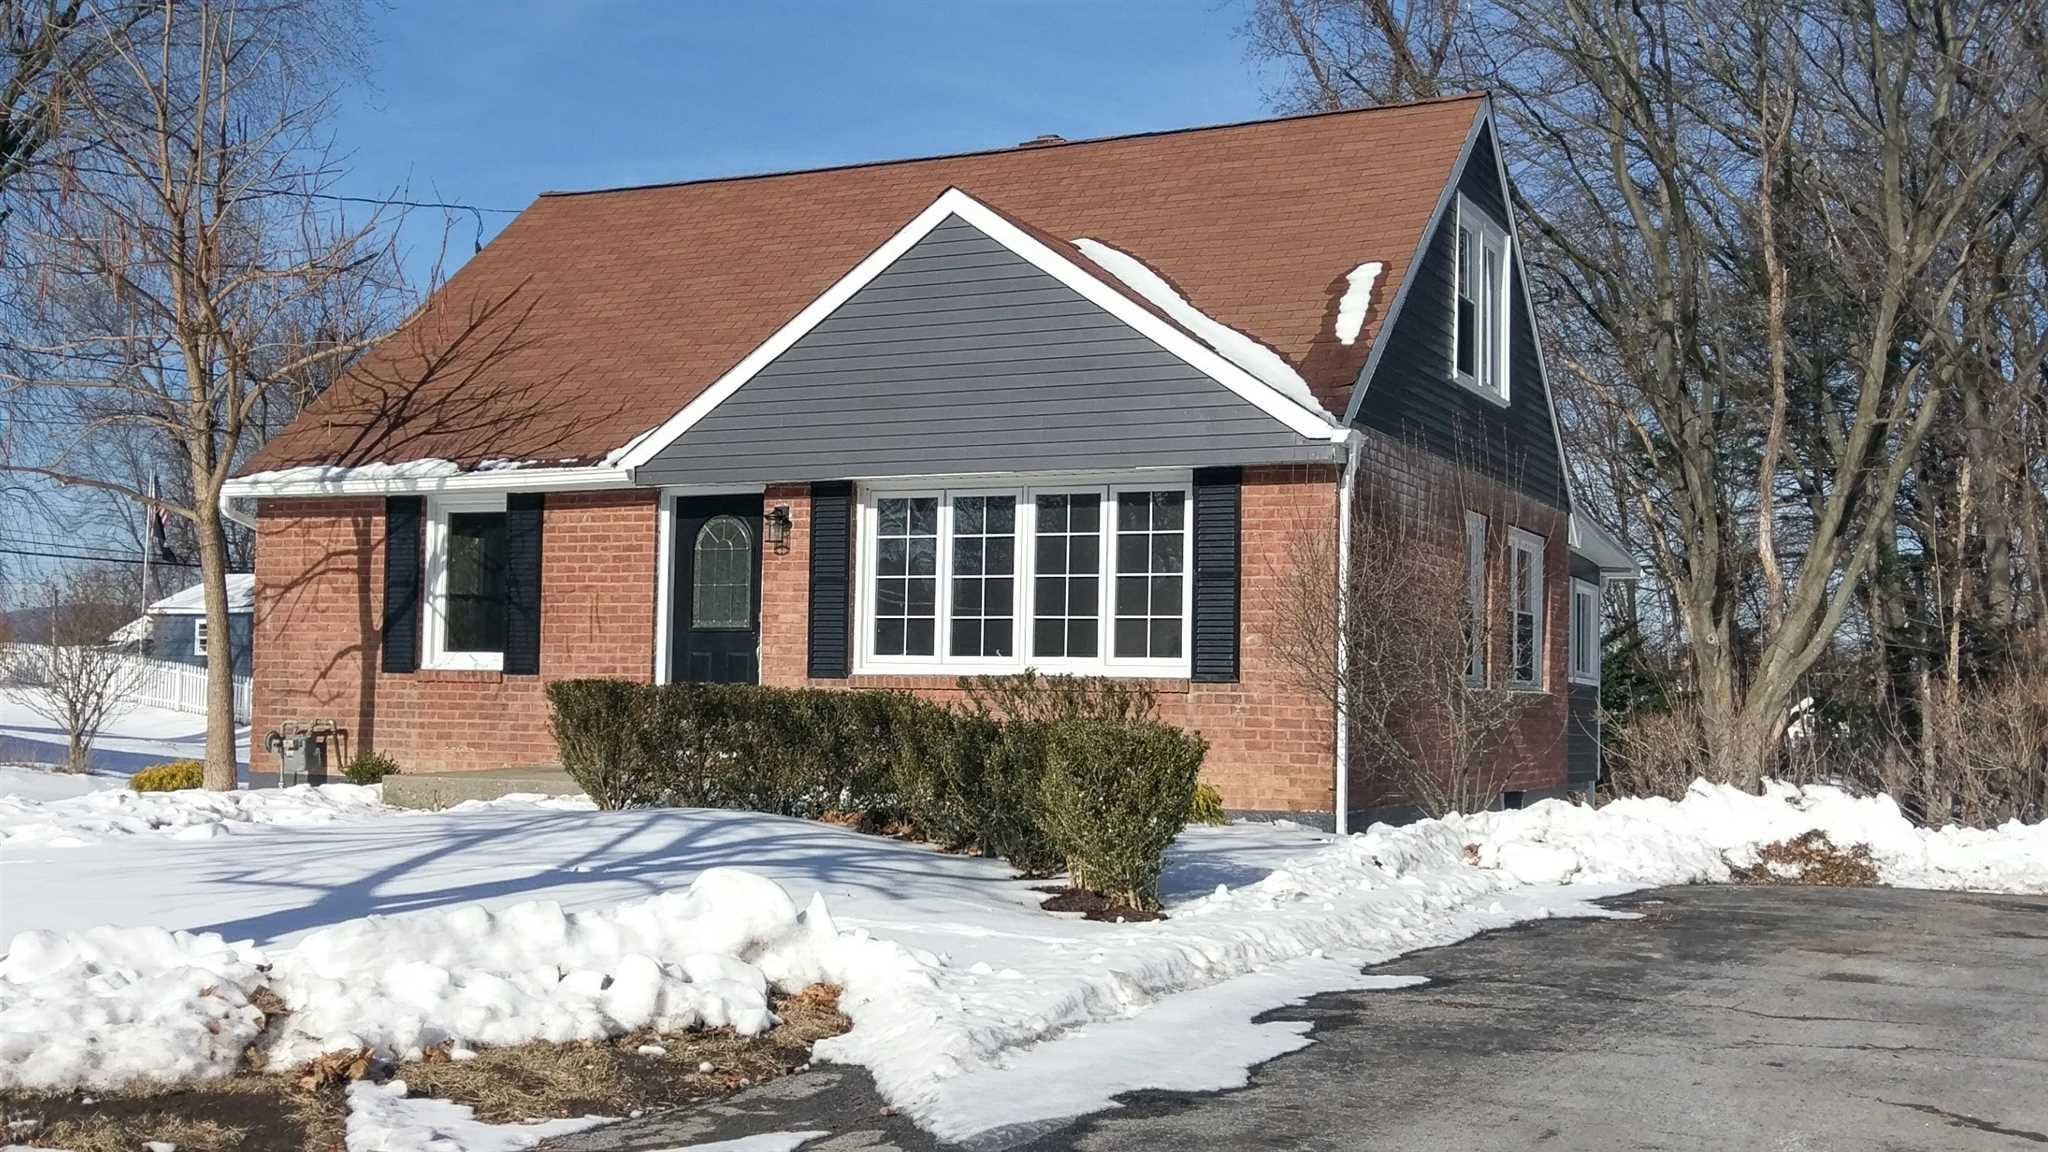 Single Family Home for Sale at 23 ANTOINETTE Drive 23 ANTOINETTE Drive Poughkeepsie, New York 12601 United States